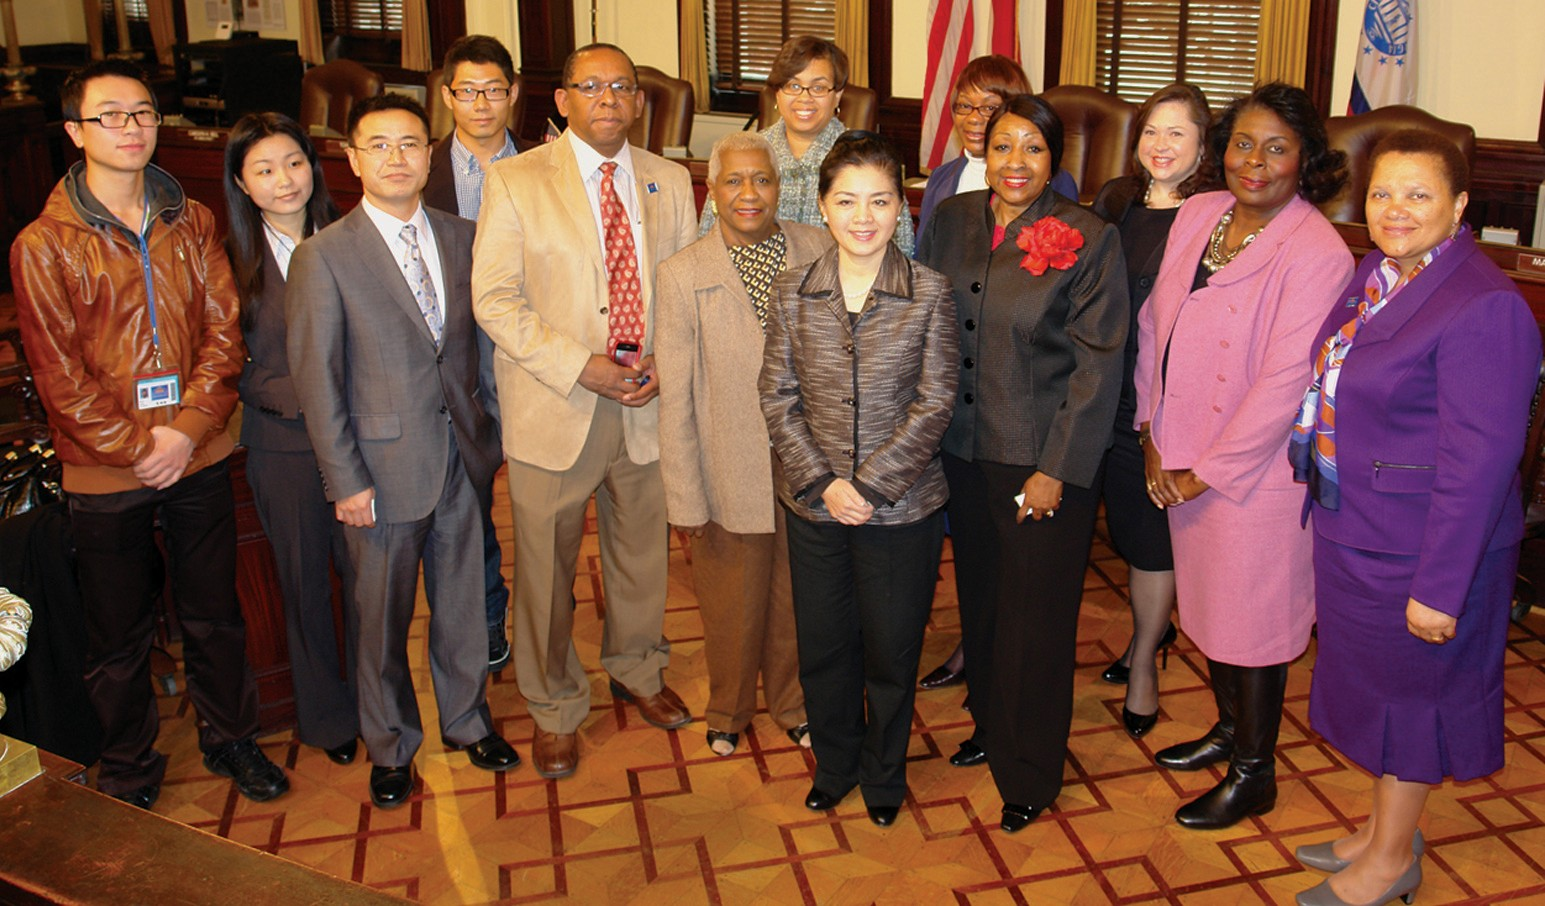 Chinese Consul General Xu Erwen and members of her delegation meet with officials and leaders from the City of Savannah in City Hall on Feb. 4